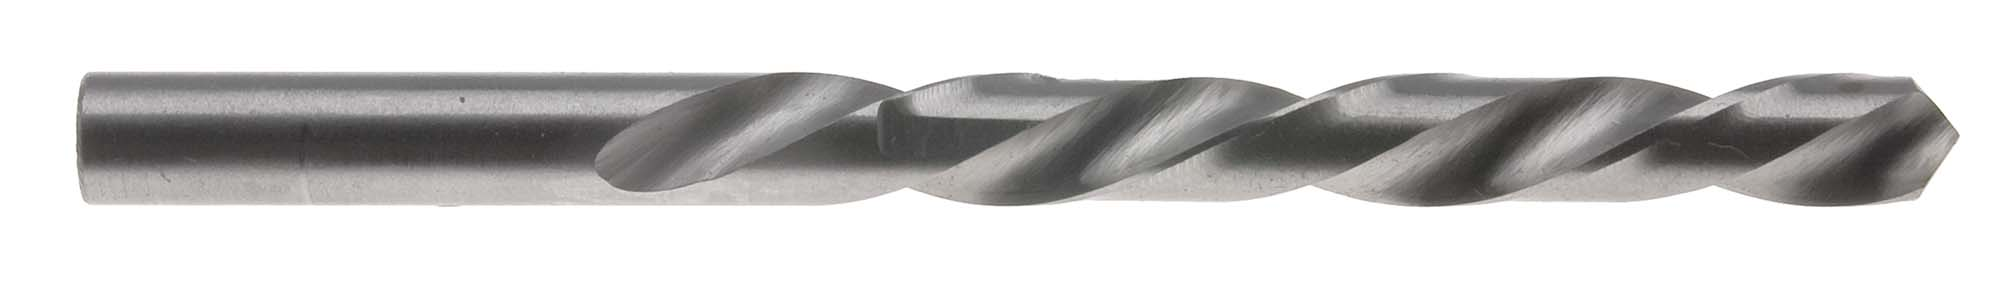 "#4 (.2090"") Left Hand Jobber Drill Bit, High Speed Steel"